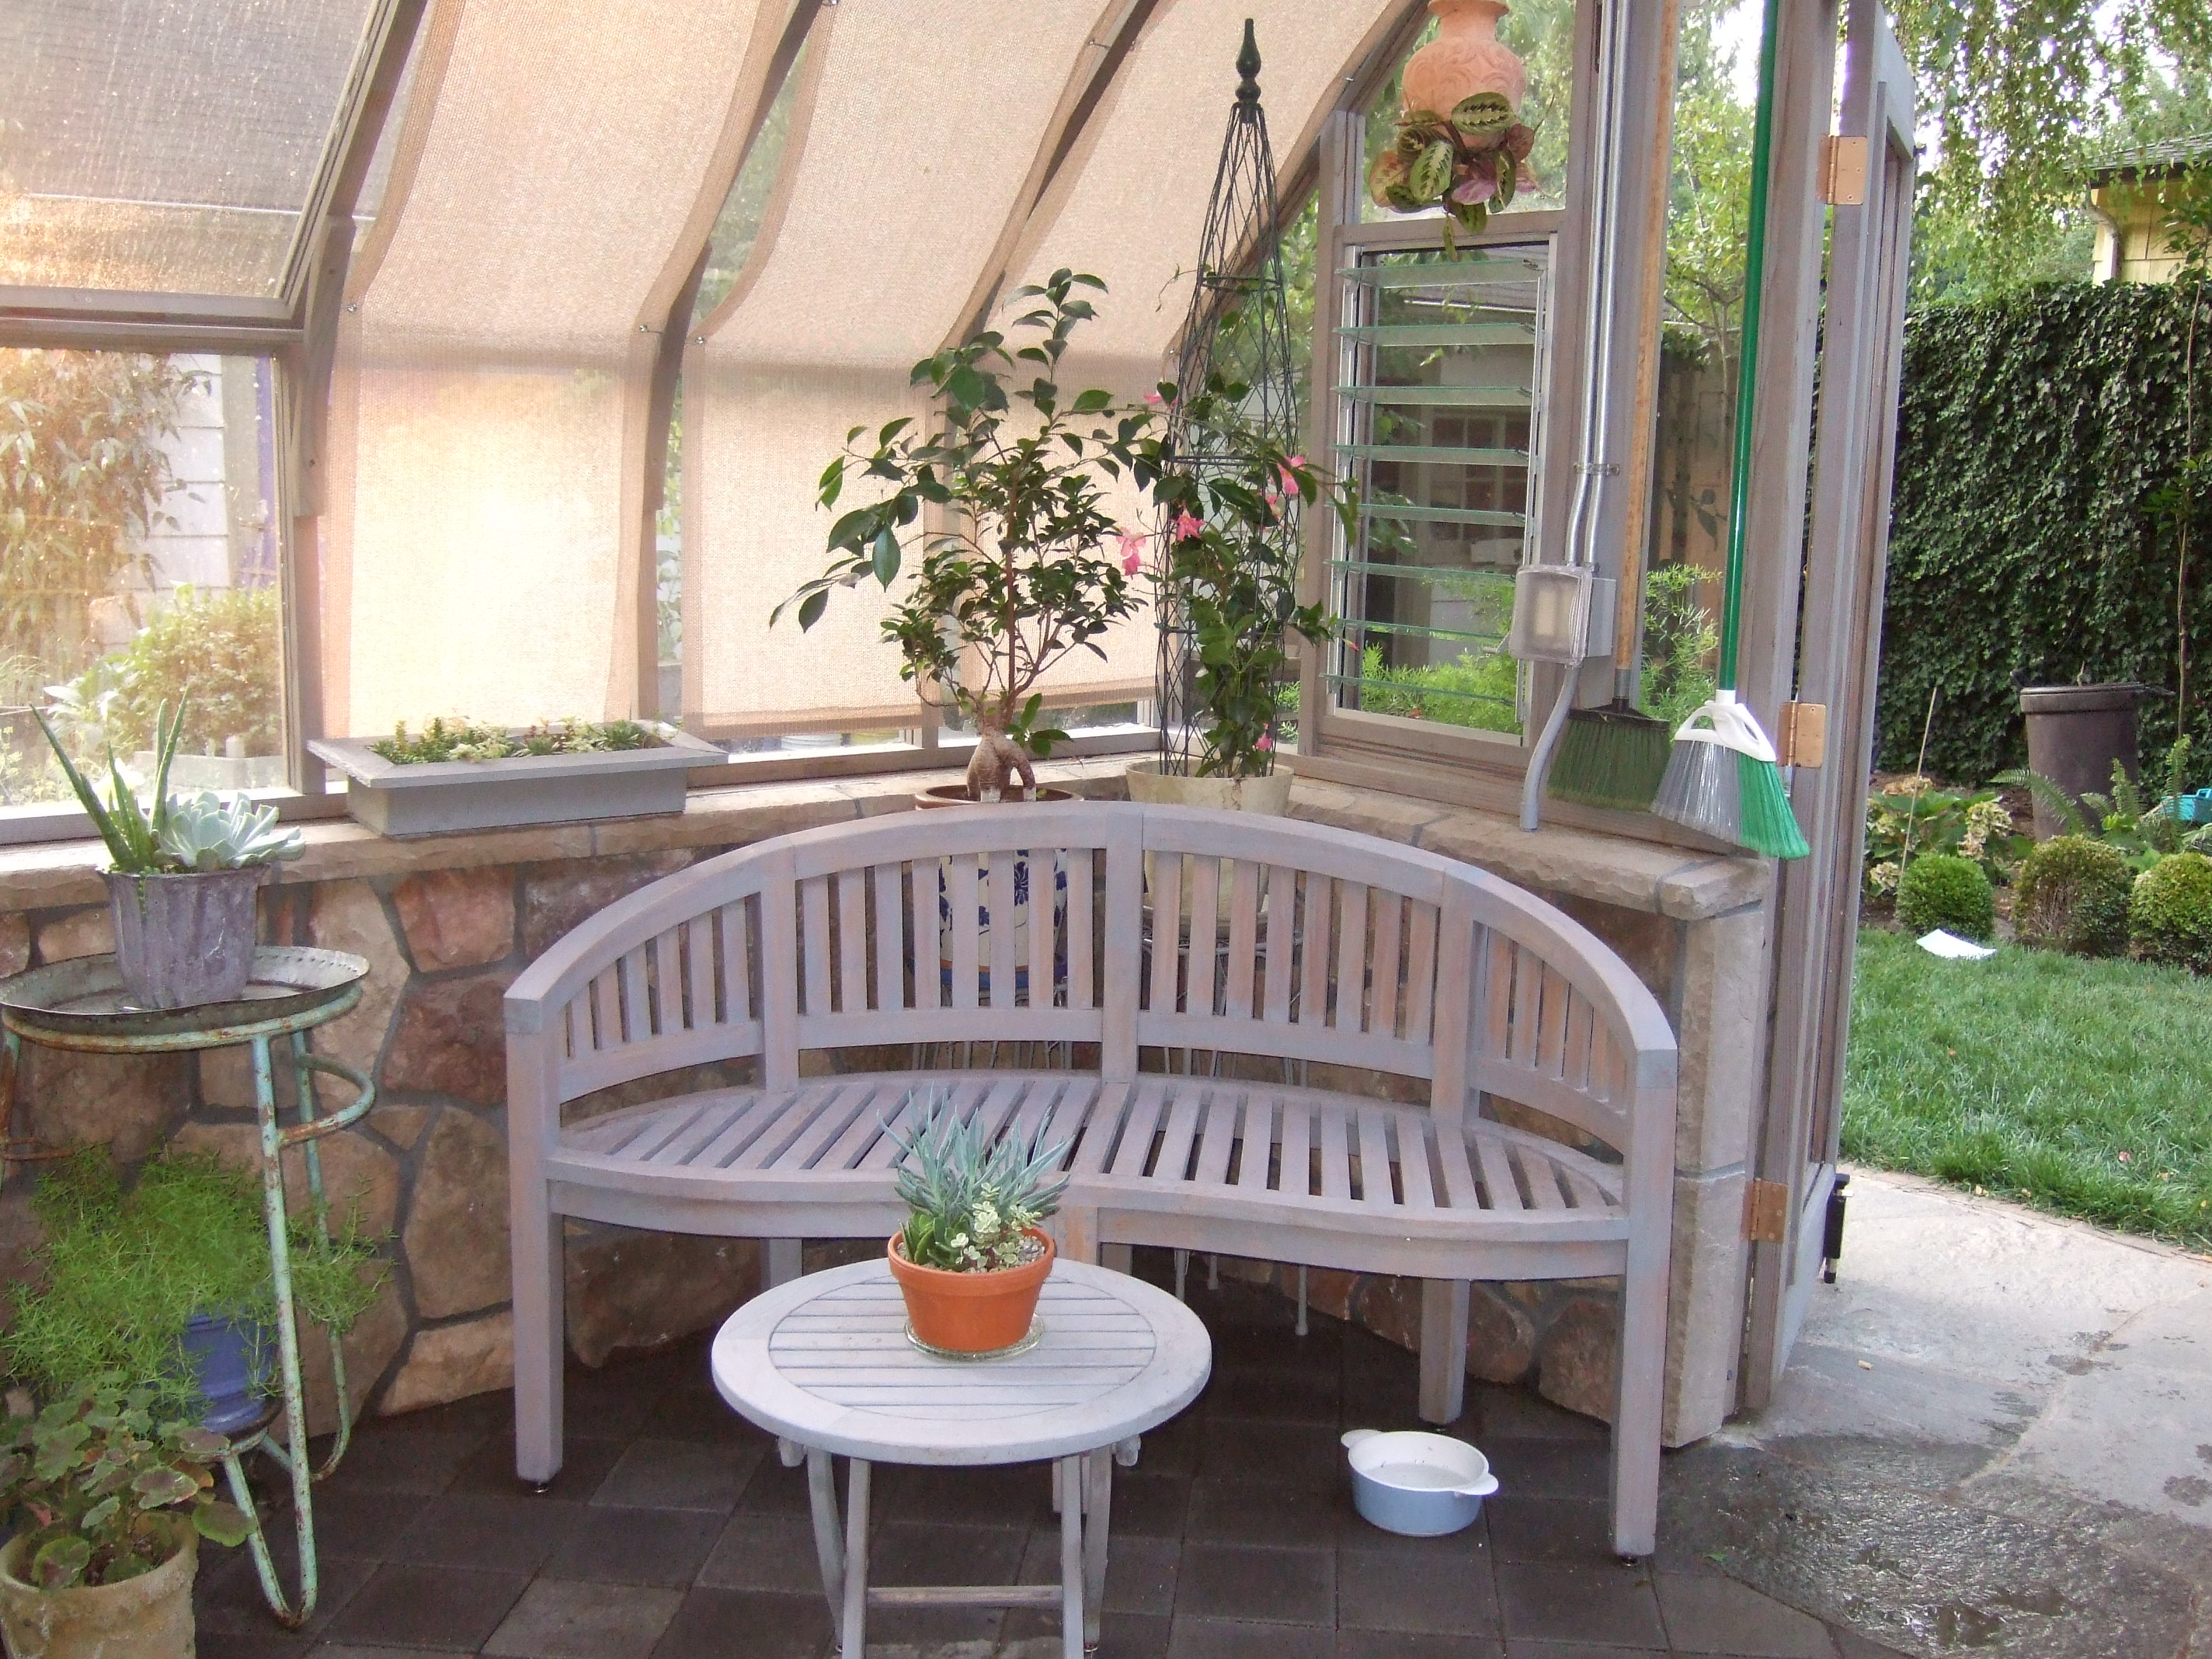 Tudor Greenhouse with sitting area